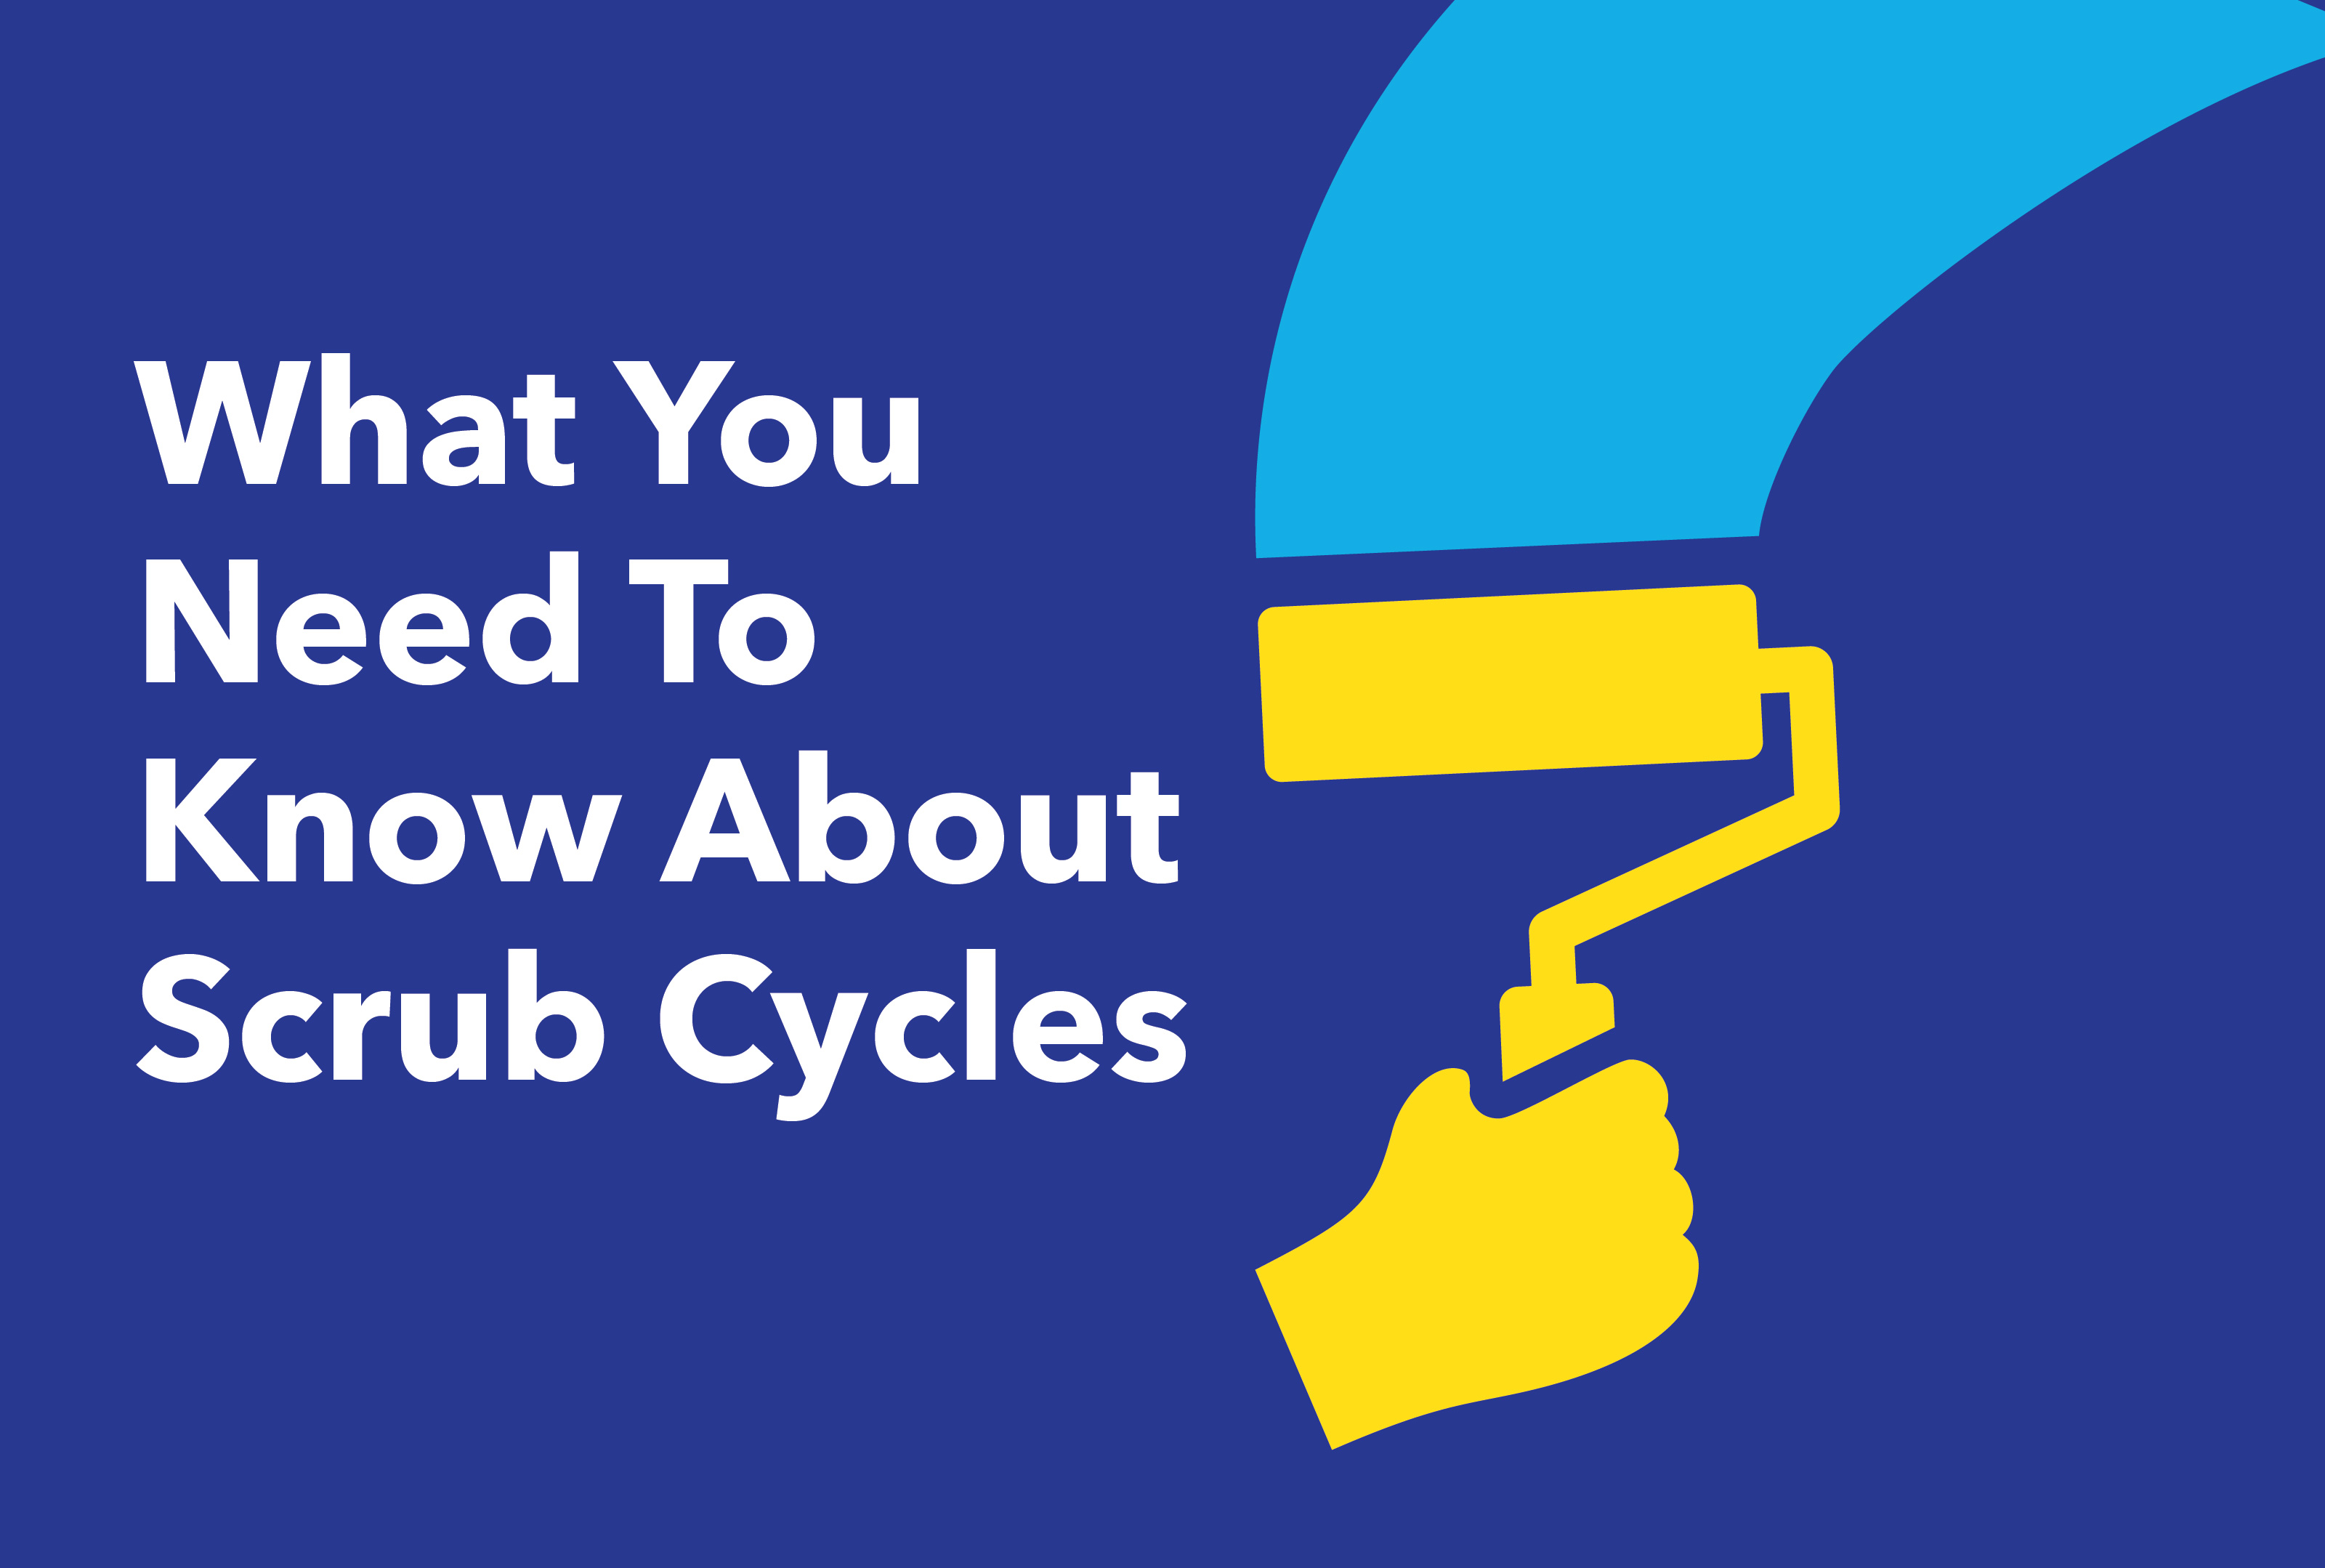 What you need to know about scrub cycles